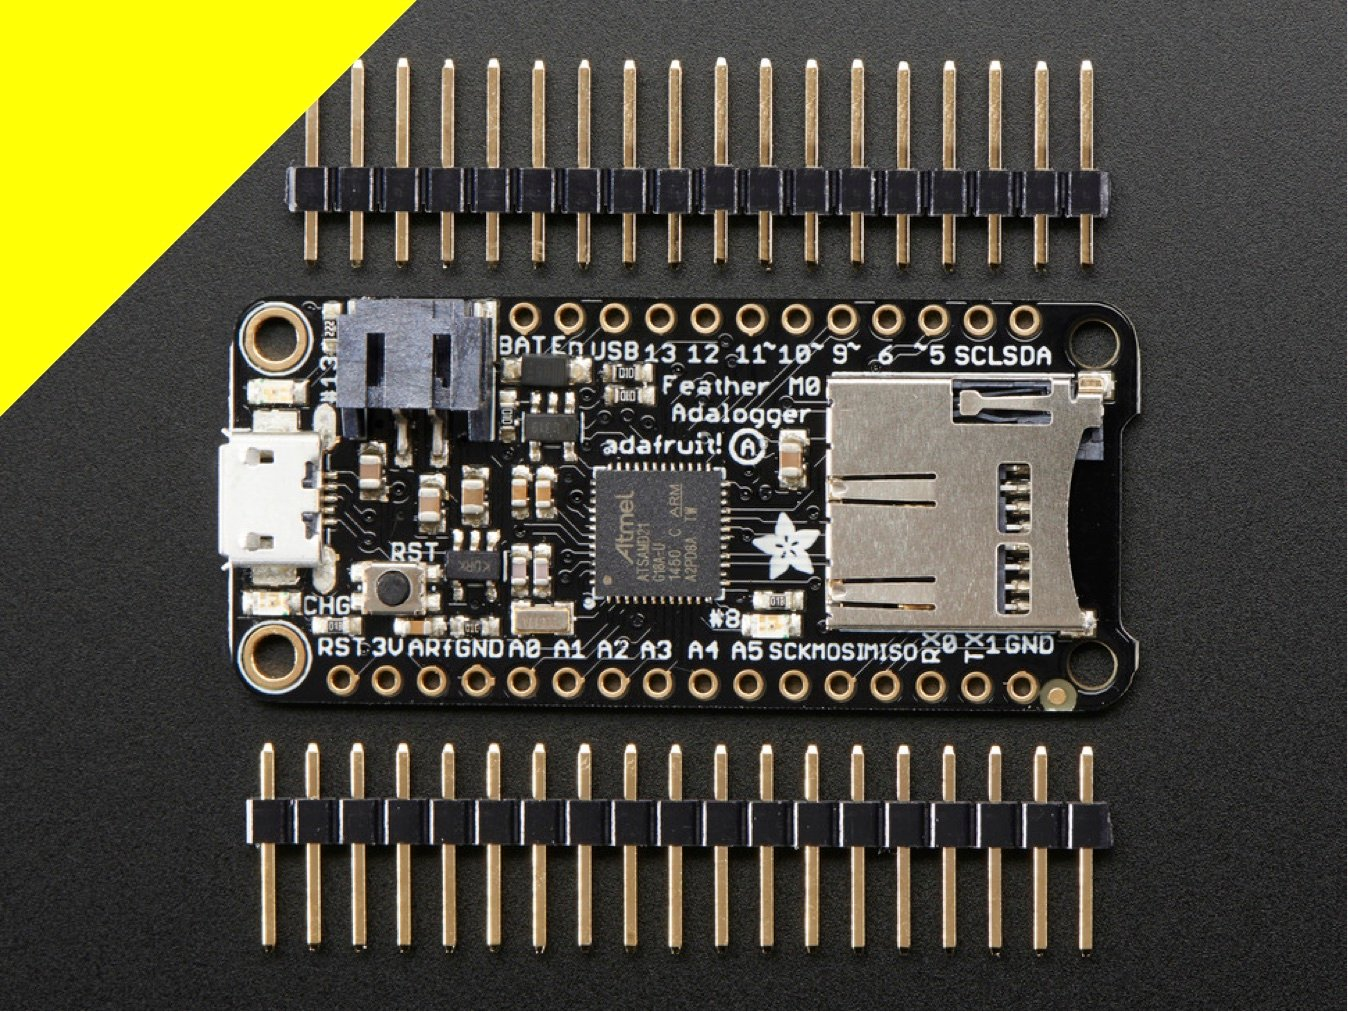 microcontrollers_feather-m0-adalogger.jpg